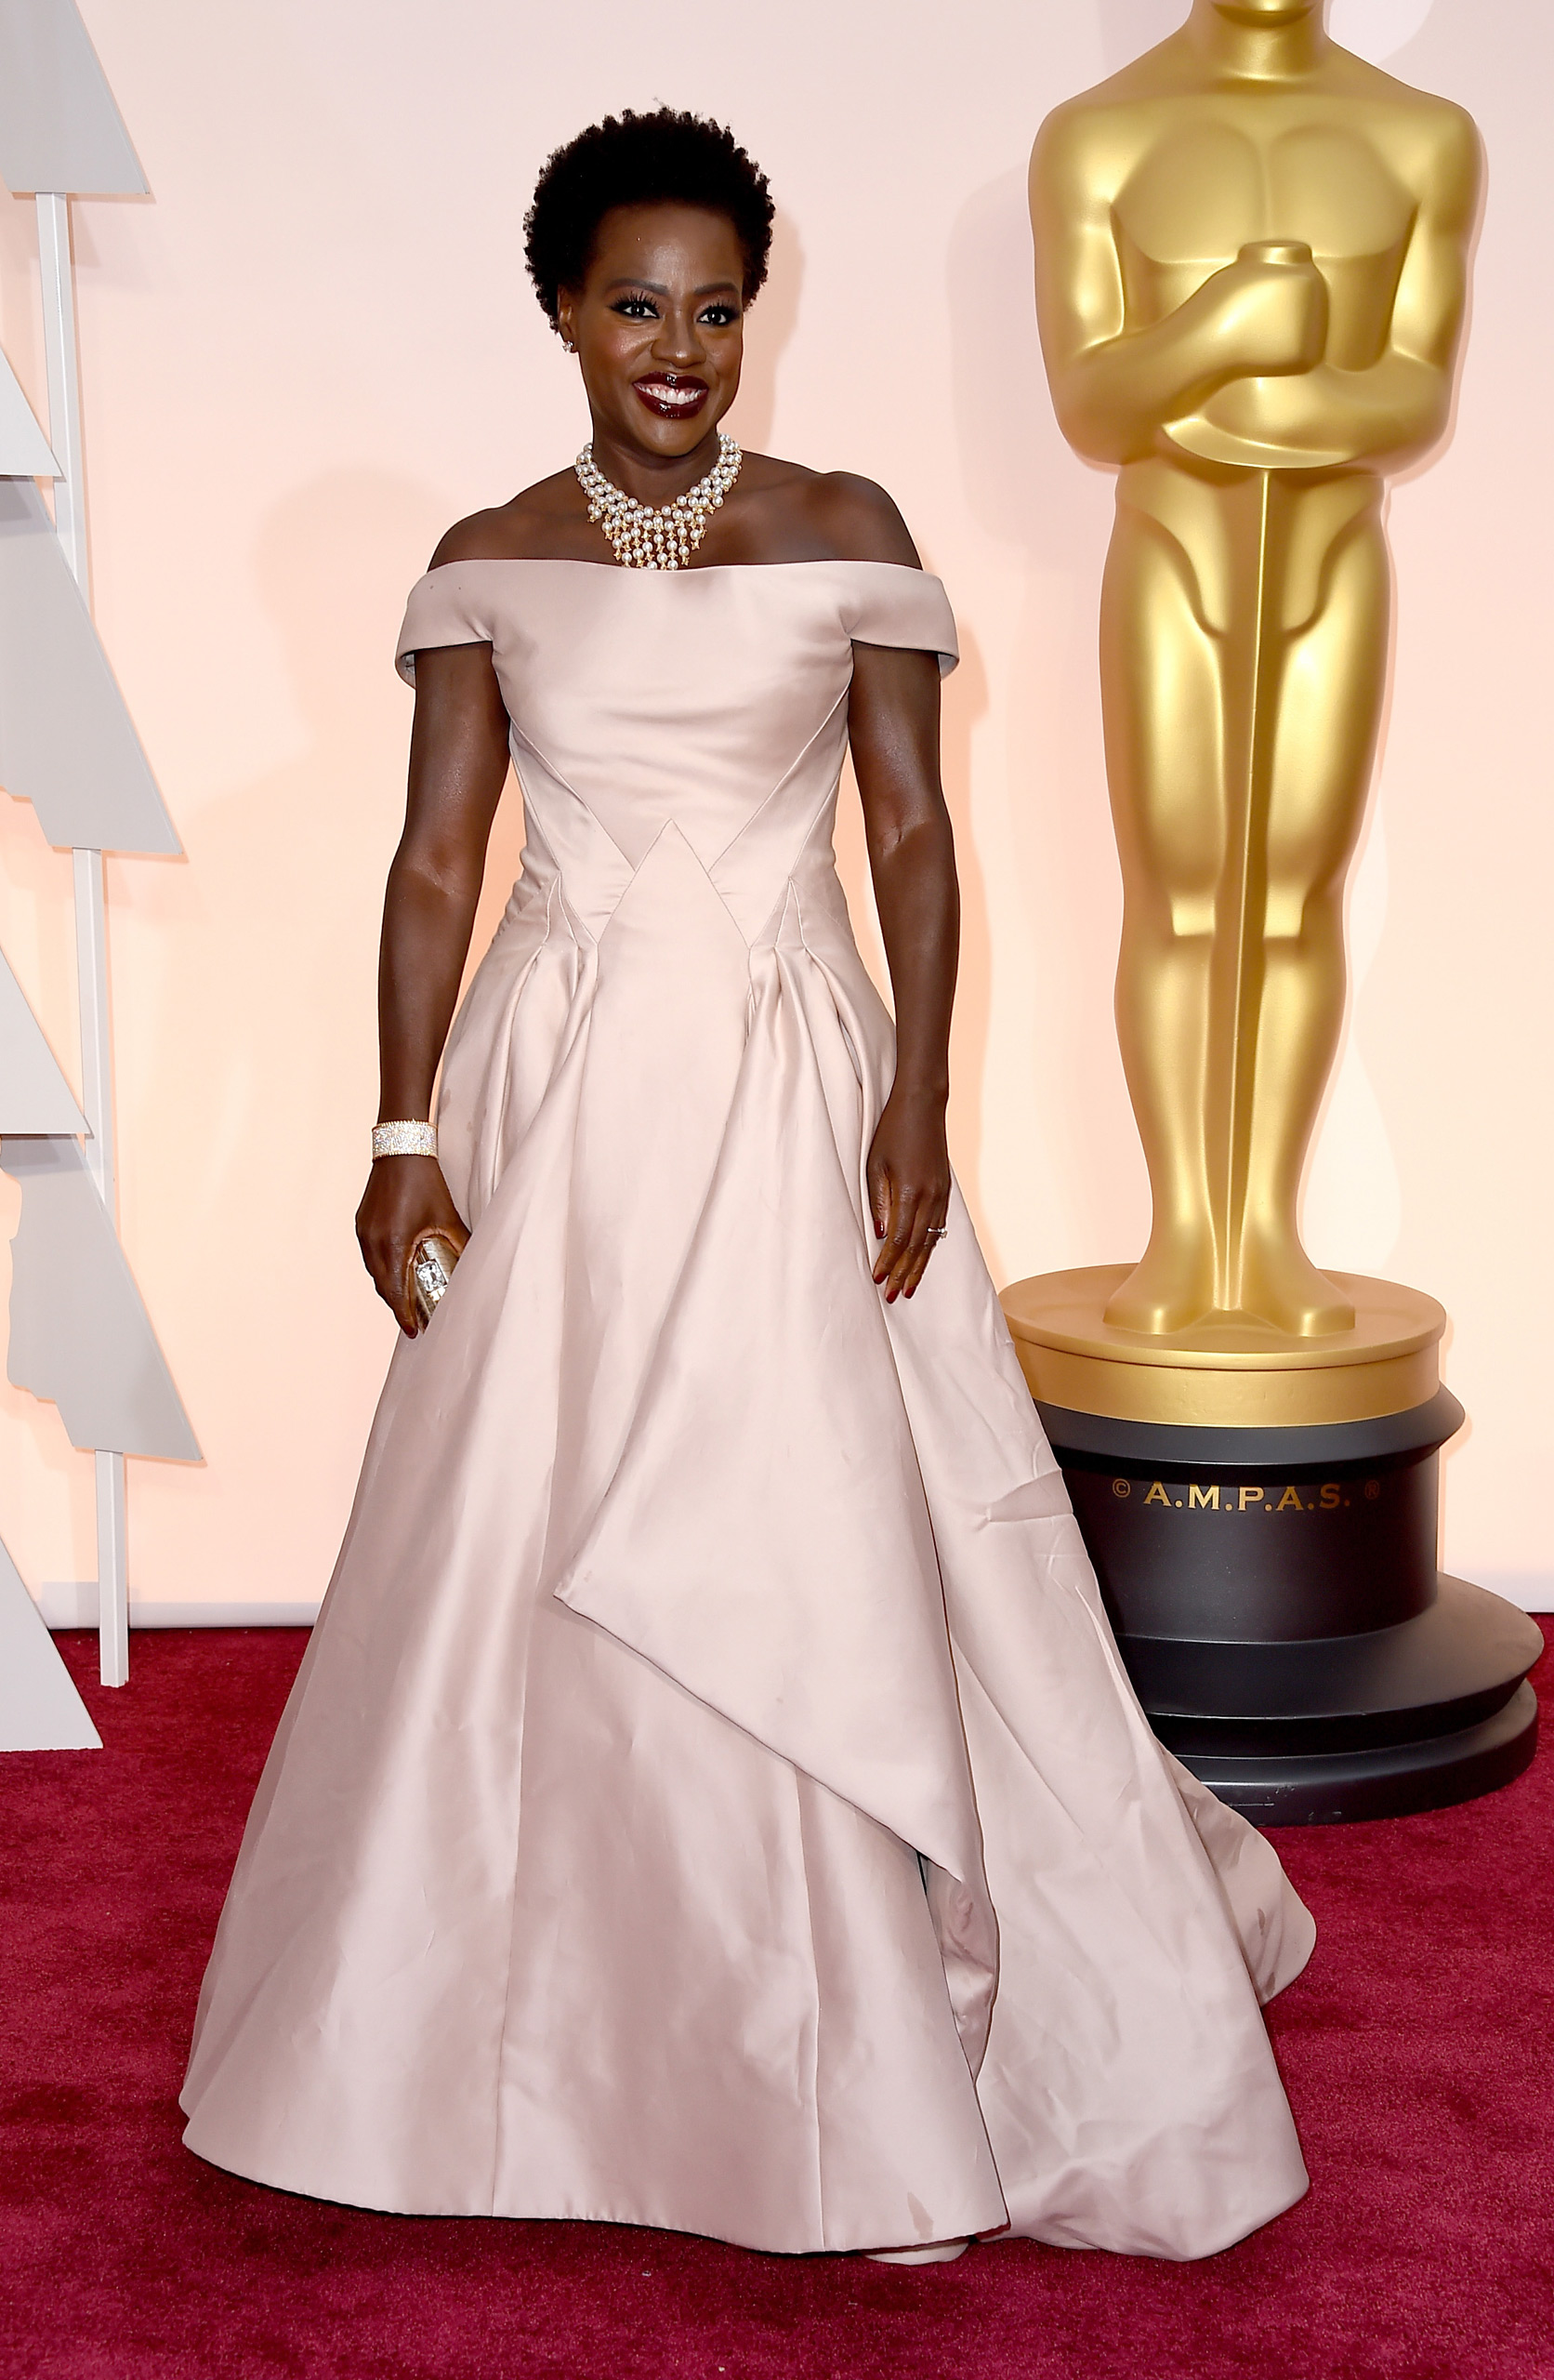 Viola Davis attends the 87th Annual Academy Awards on Feb. 22, 2015 in Hollywood, Calif.